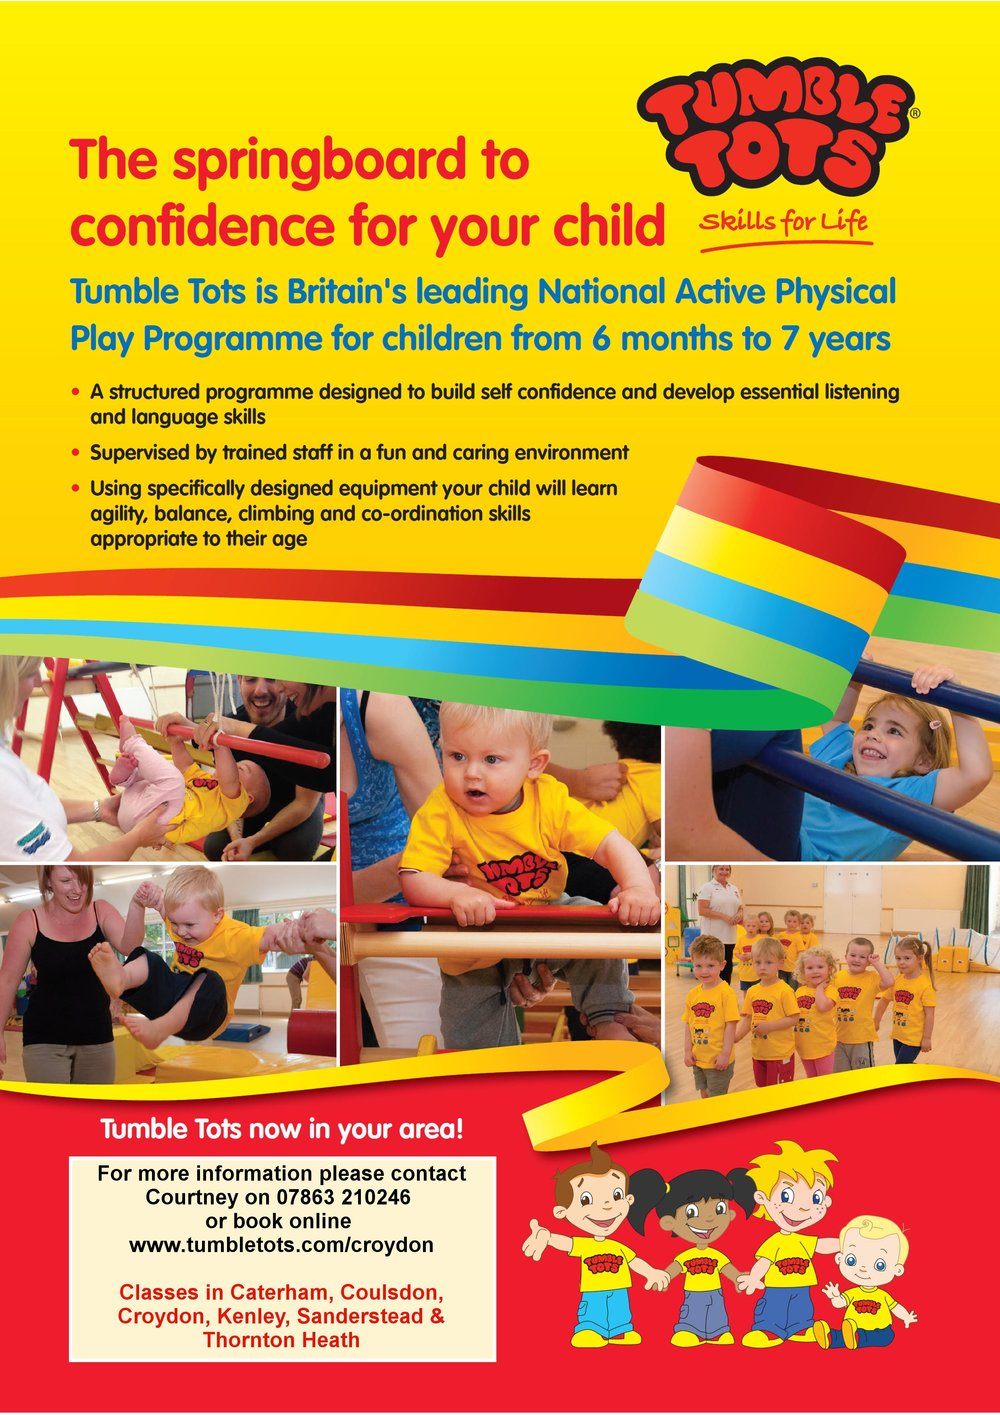 Tumble Tots - On Mondays the hall is taken over by Tumble Tots.There are classes for your toddlersWalkers-2 yearsClass Times 10:00-10:45Ages 2 -3Class Times 11:00-11:45Moving -WalkingClass Time 12:00-12:45Ages 3-5Class Time 1:00-1:45Contact Courtney for more details on 07863210246